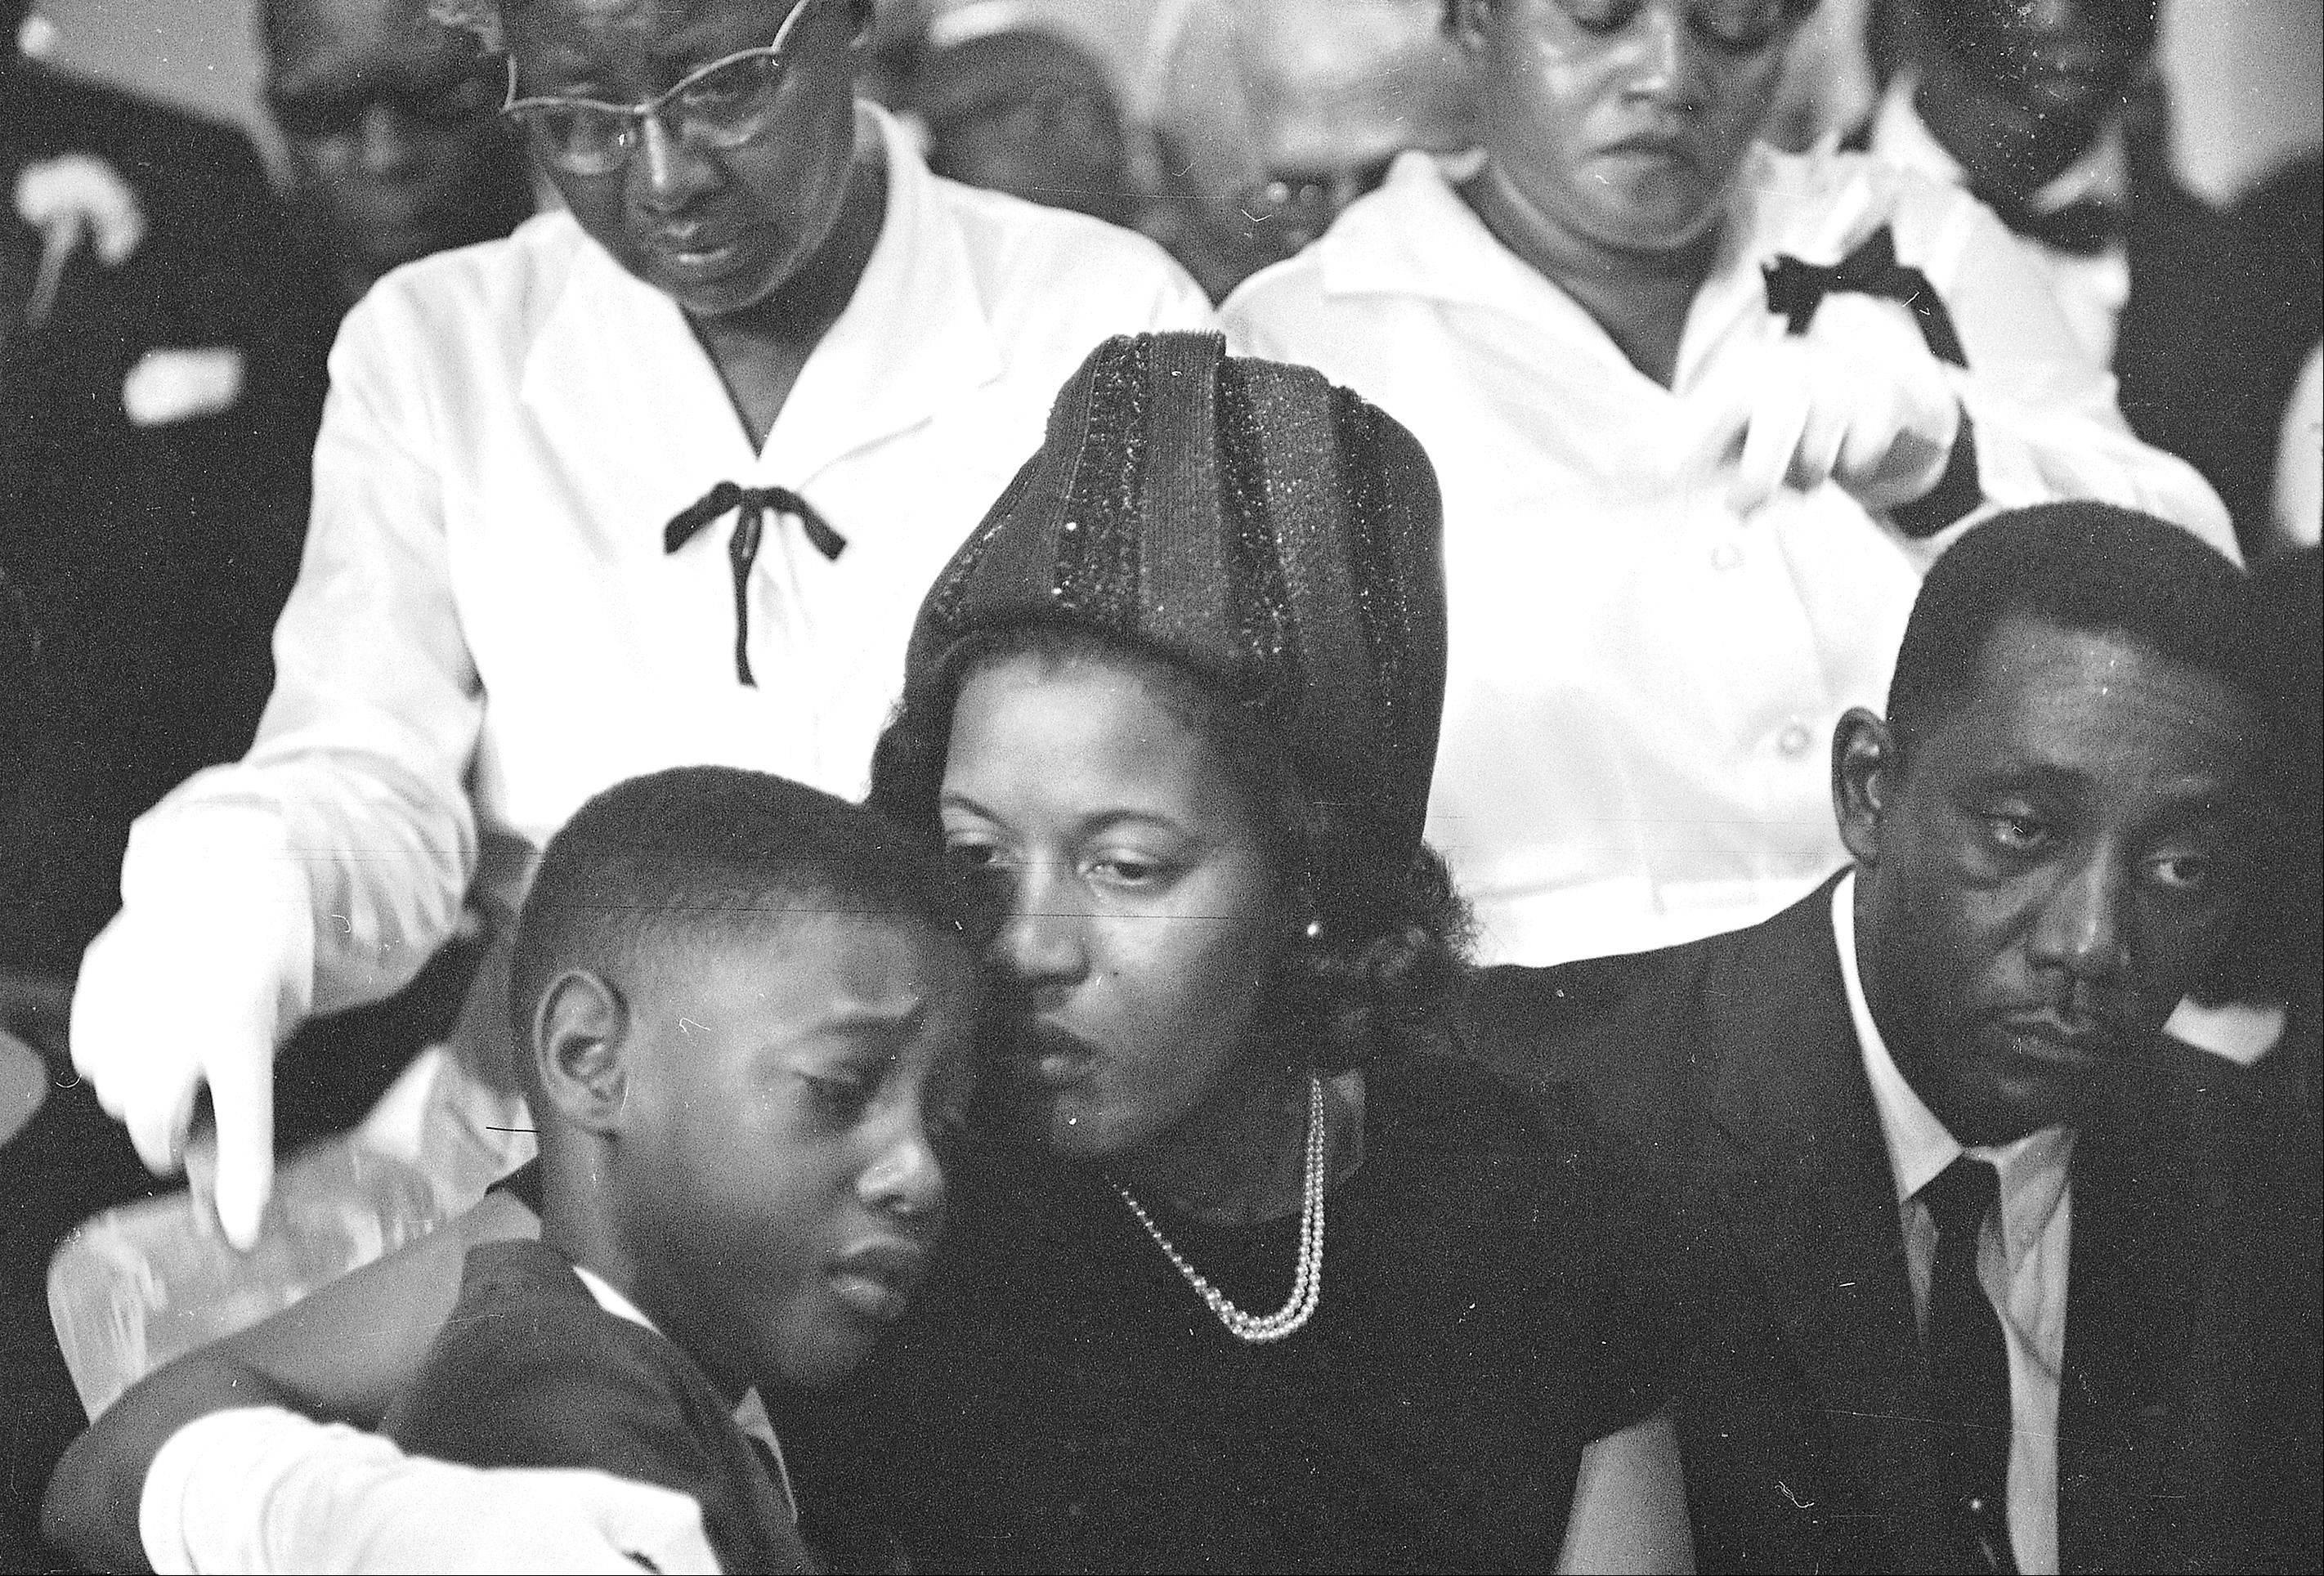 Myrlie Louise Evers comforts her 9-year-old son, Darrel, at the funeral in Jackson, Miss. for slain integration leader Medgar Evers. Several events are being held to remember Evers, the first Mississippi field secretary of the National Association for the Advancement of Colored People. He was 37 when he was assassinated outside the family's north Jackson home on June 12, 1963.